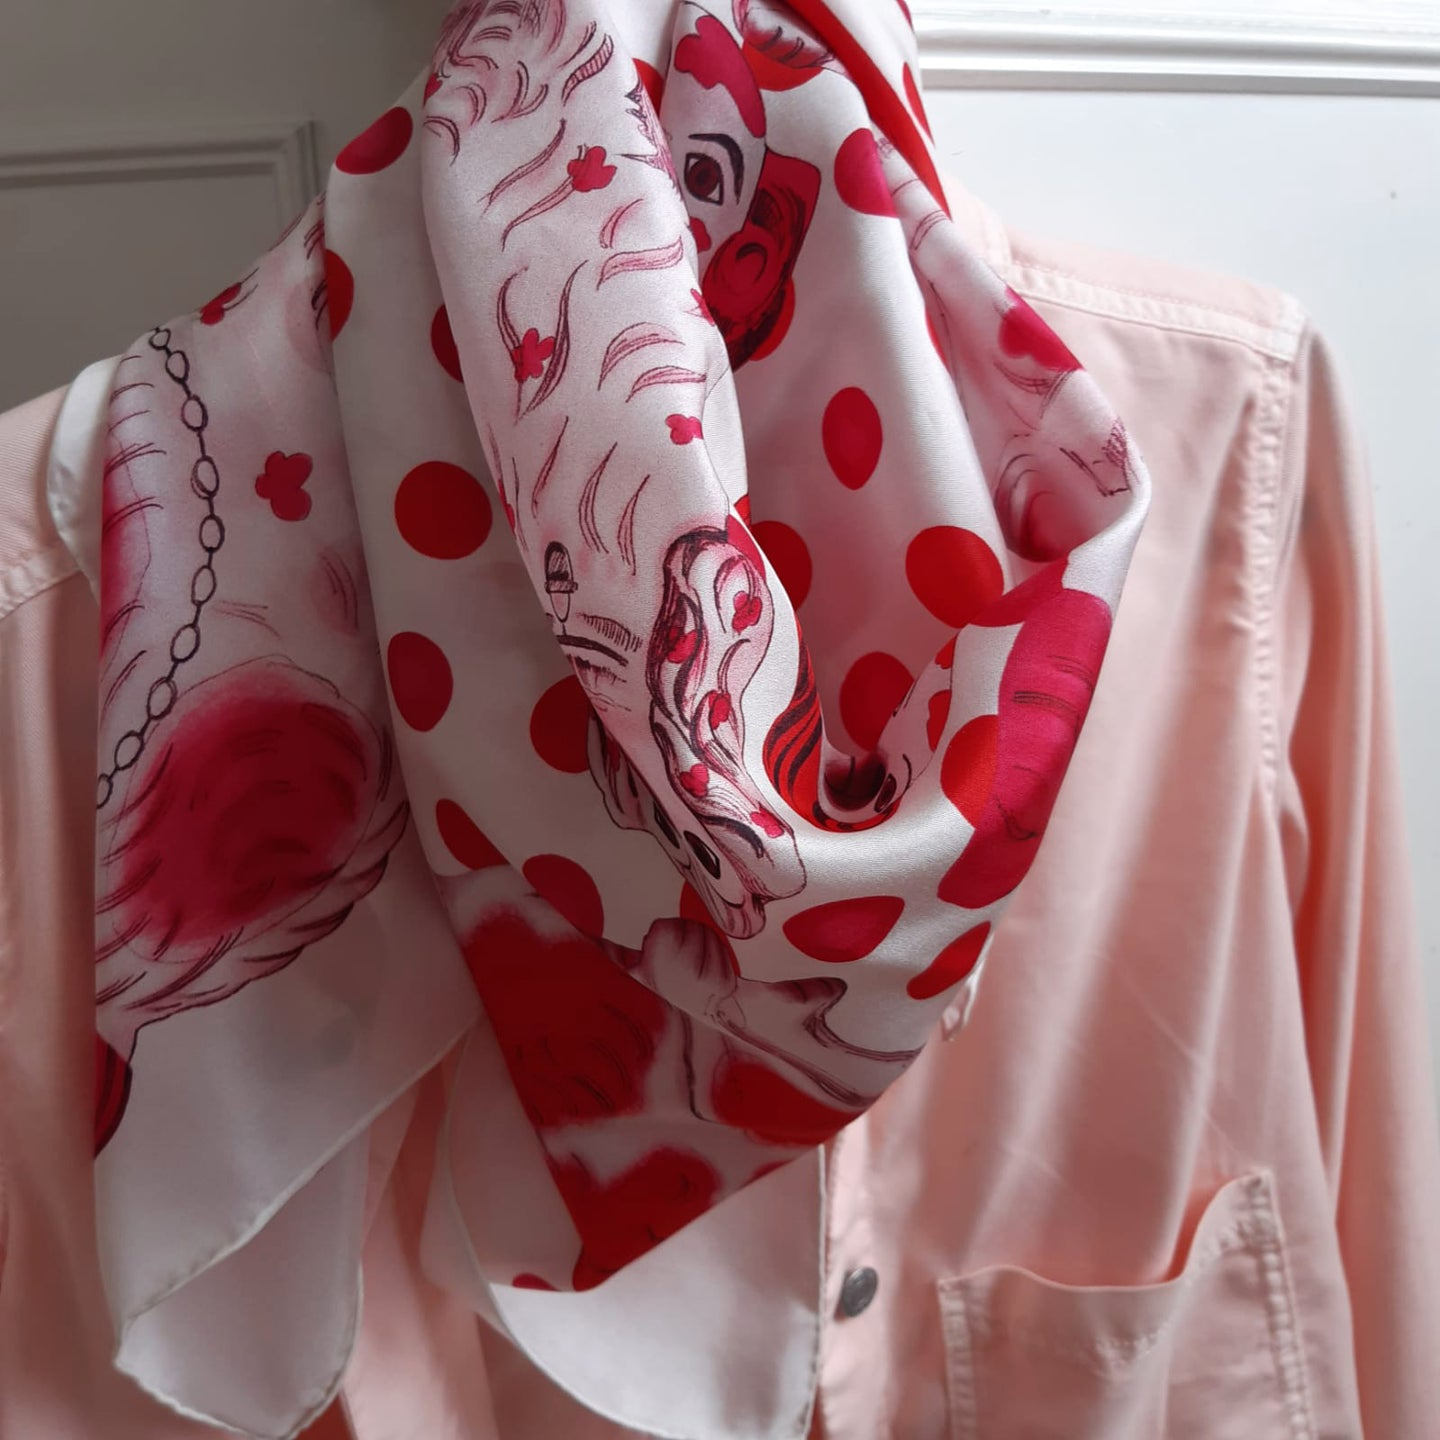 red and white dog art scarf on pink shirt